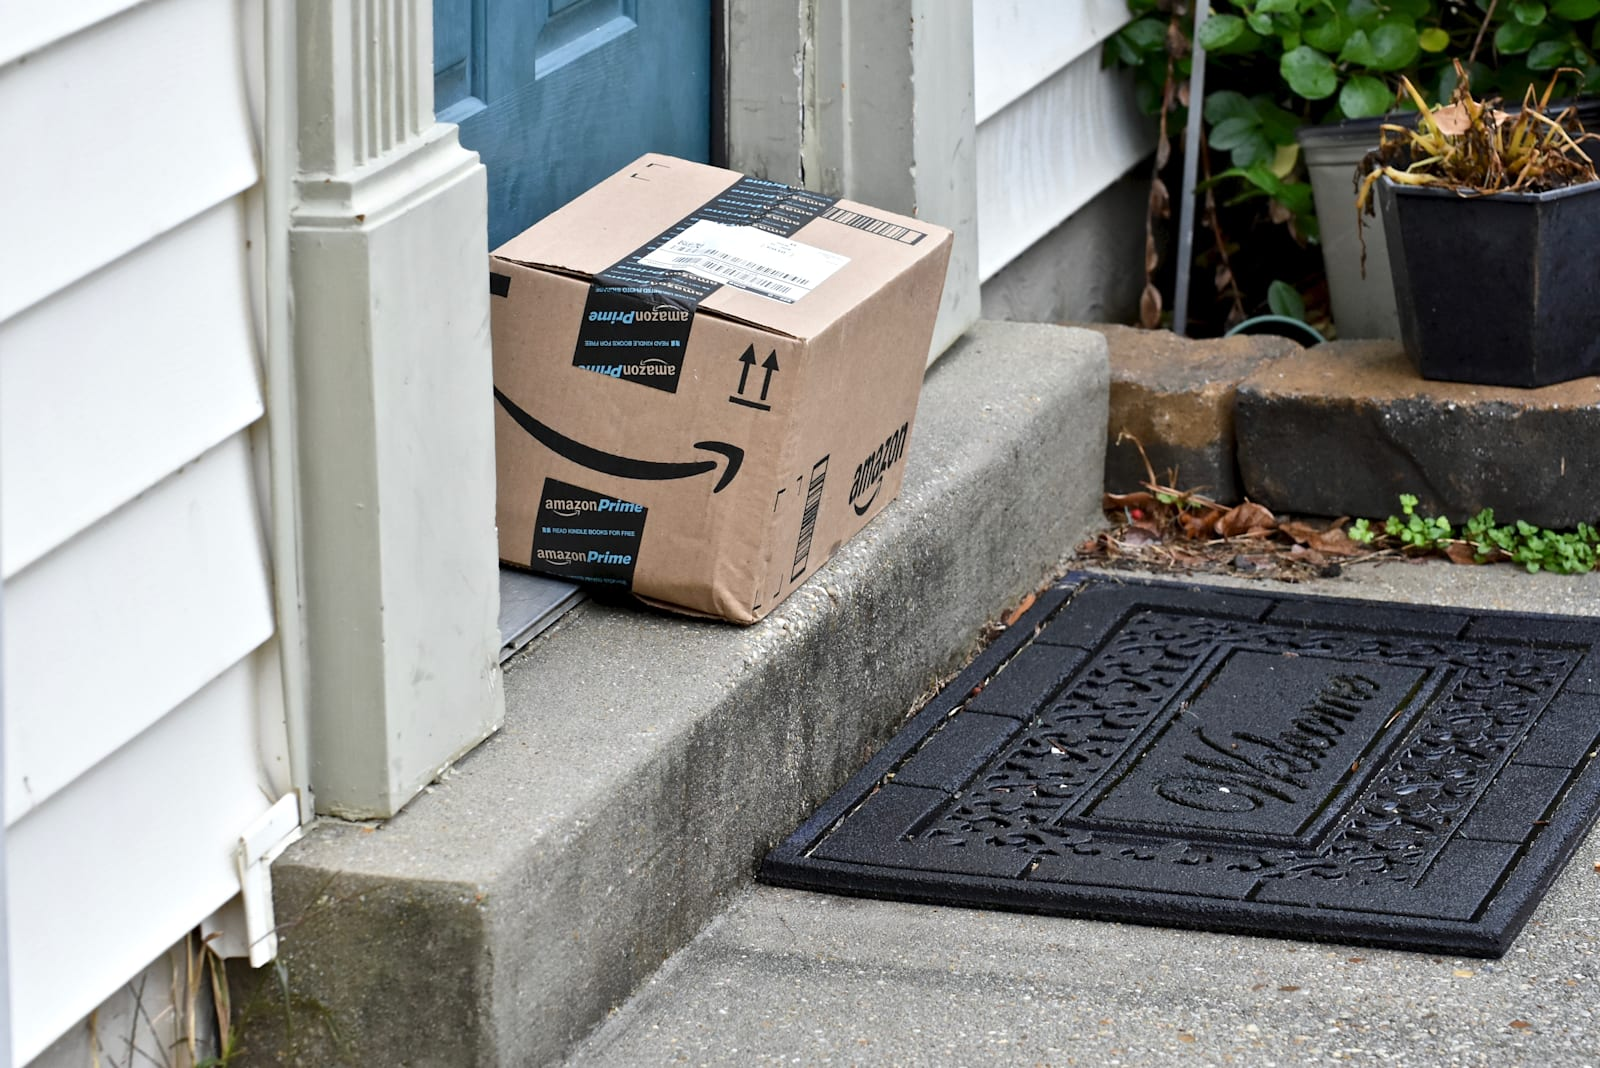 Amazon keeps popular items stocked by buying from other retailers